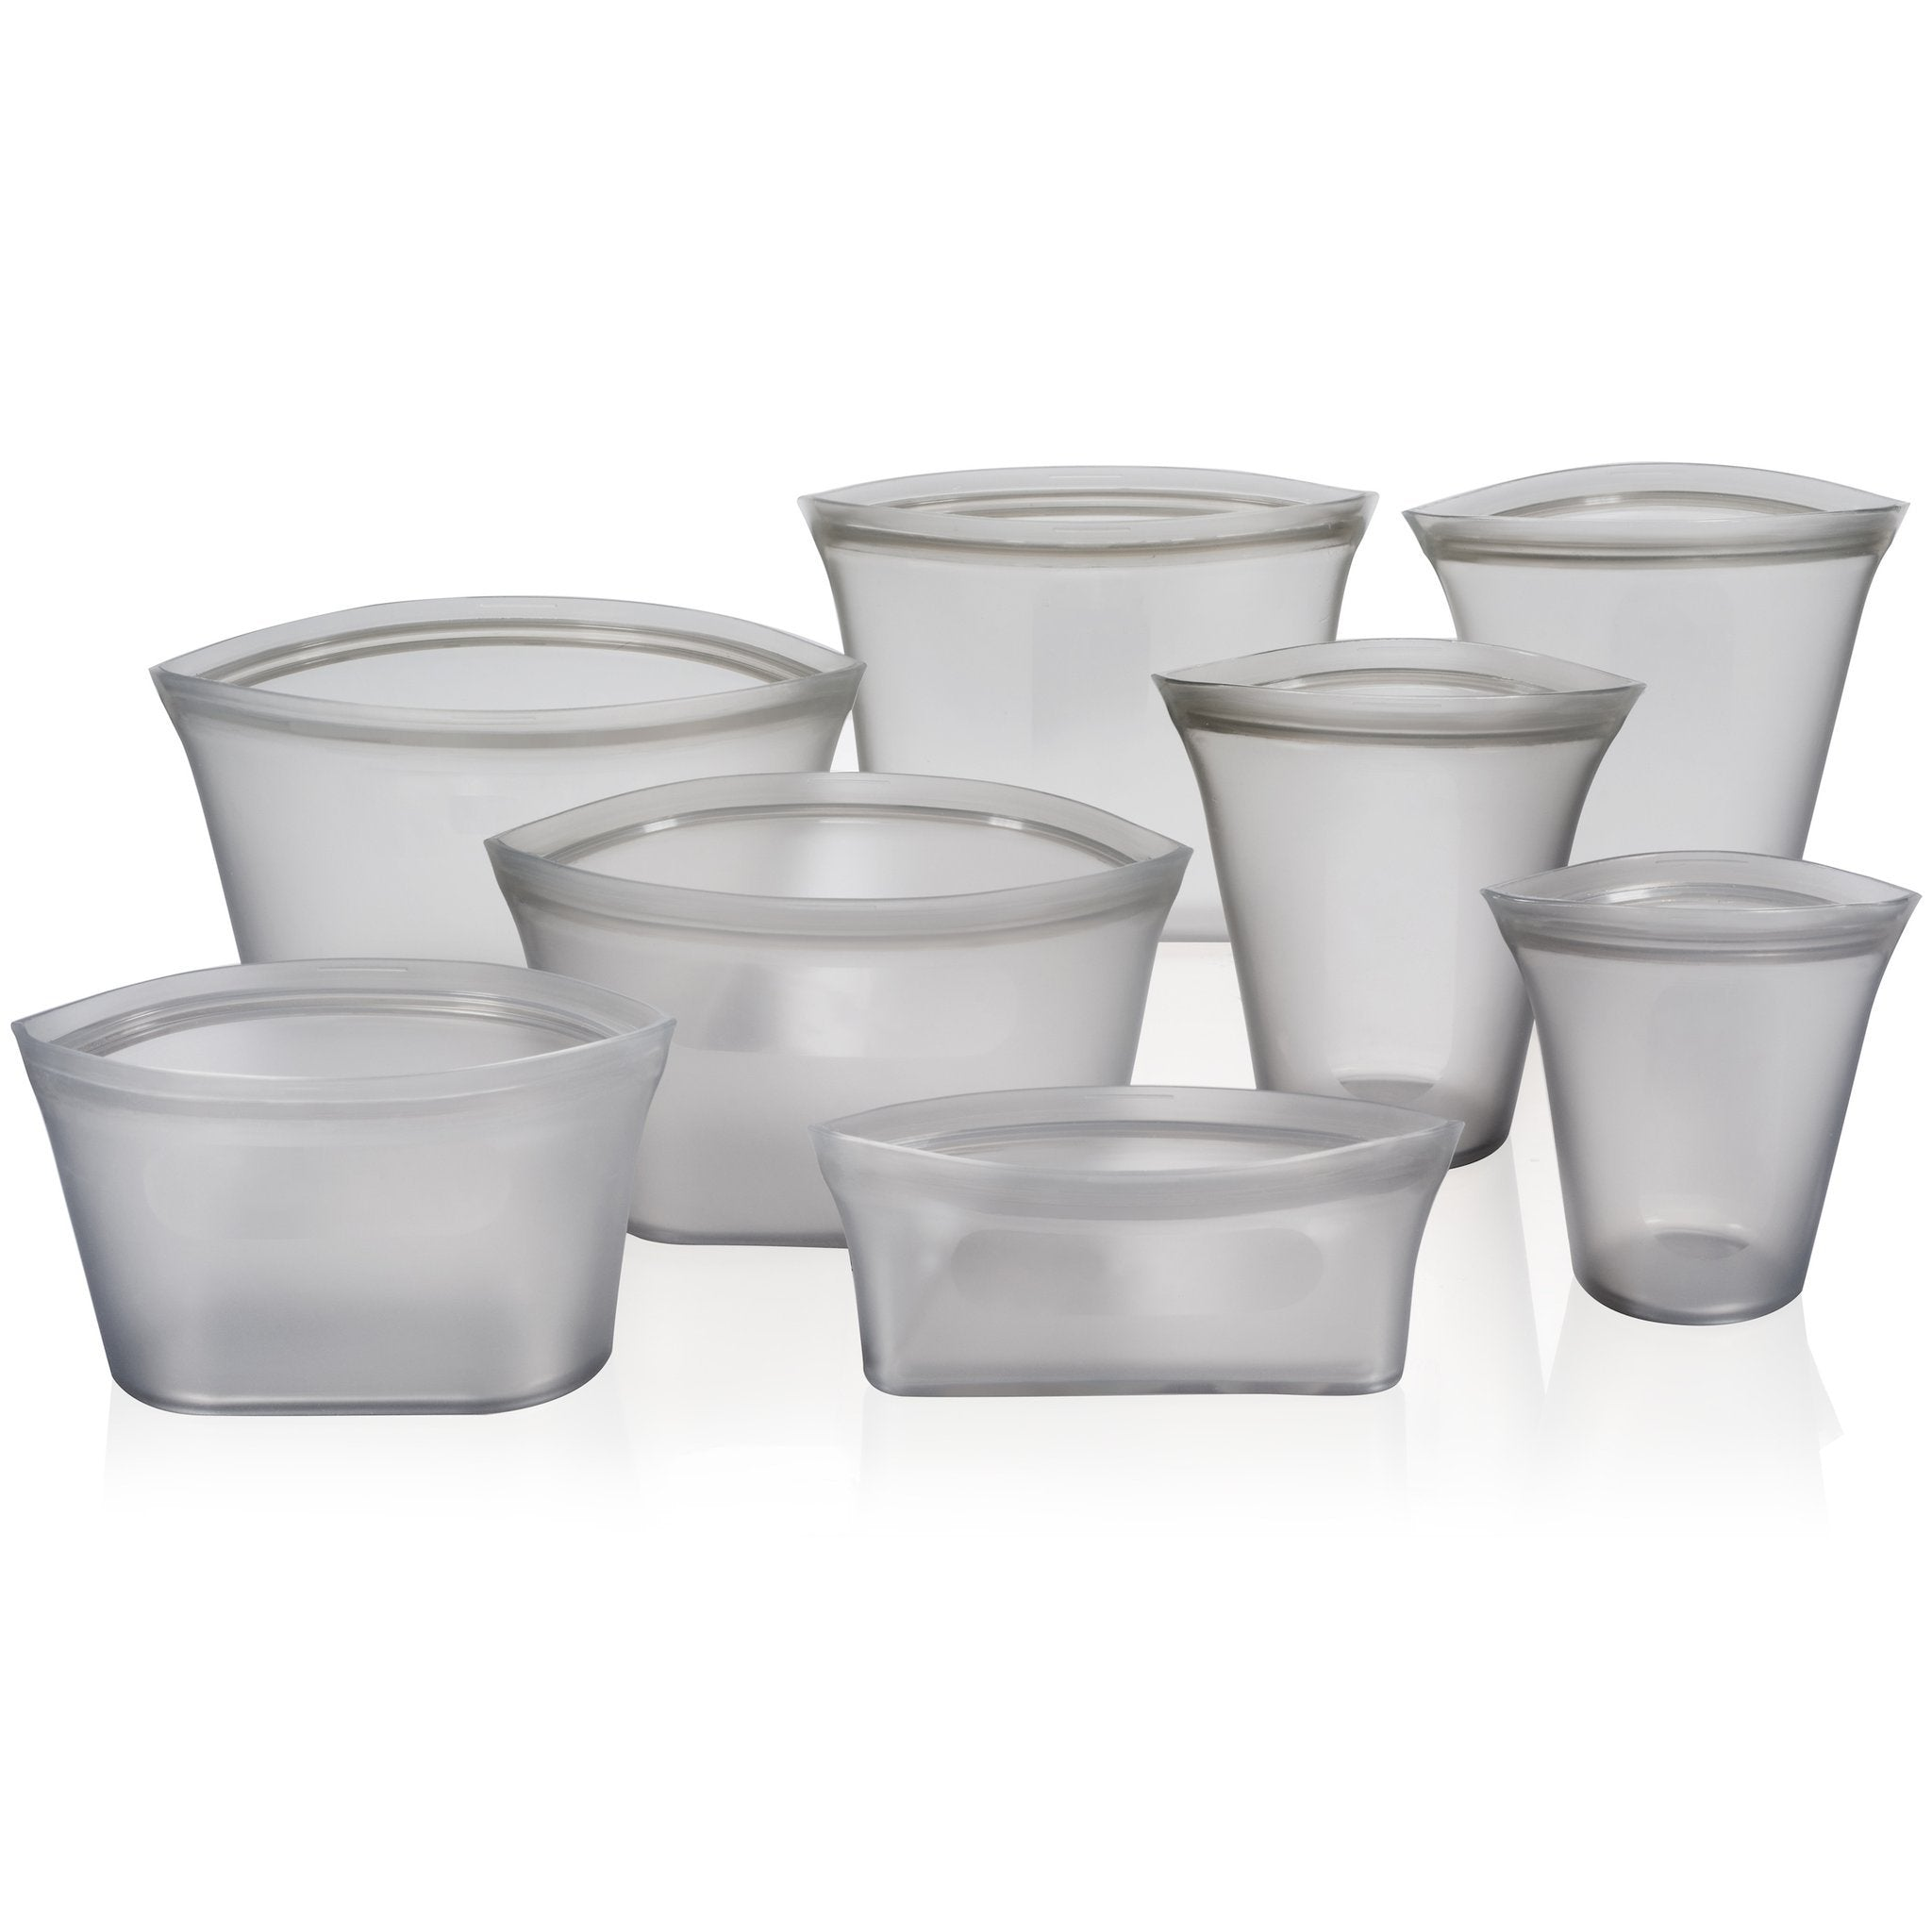 Reusable Storage Containers-Completely Plastic